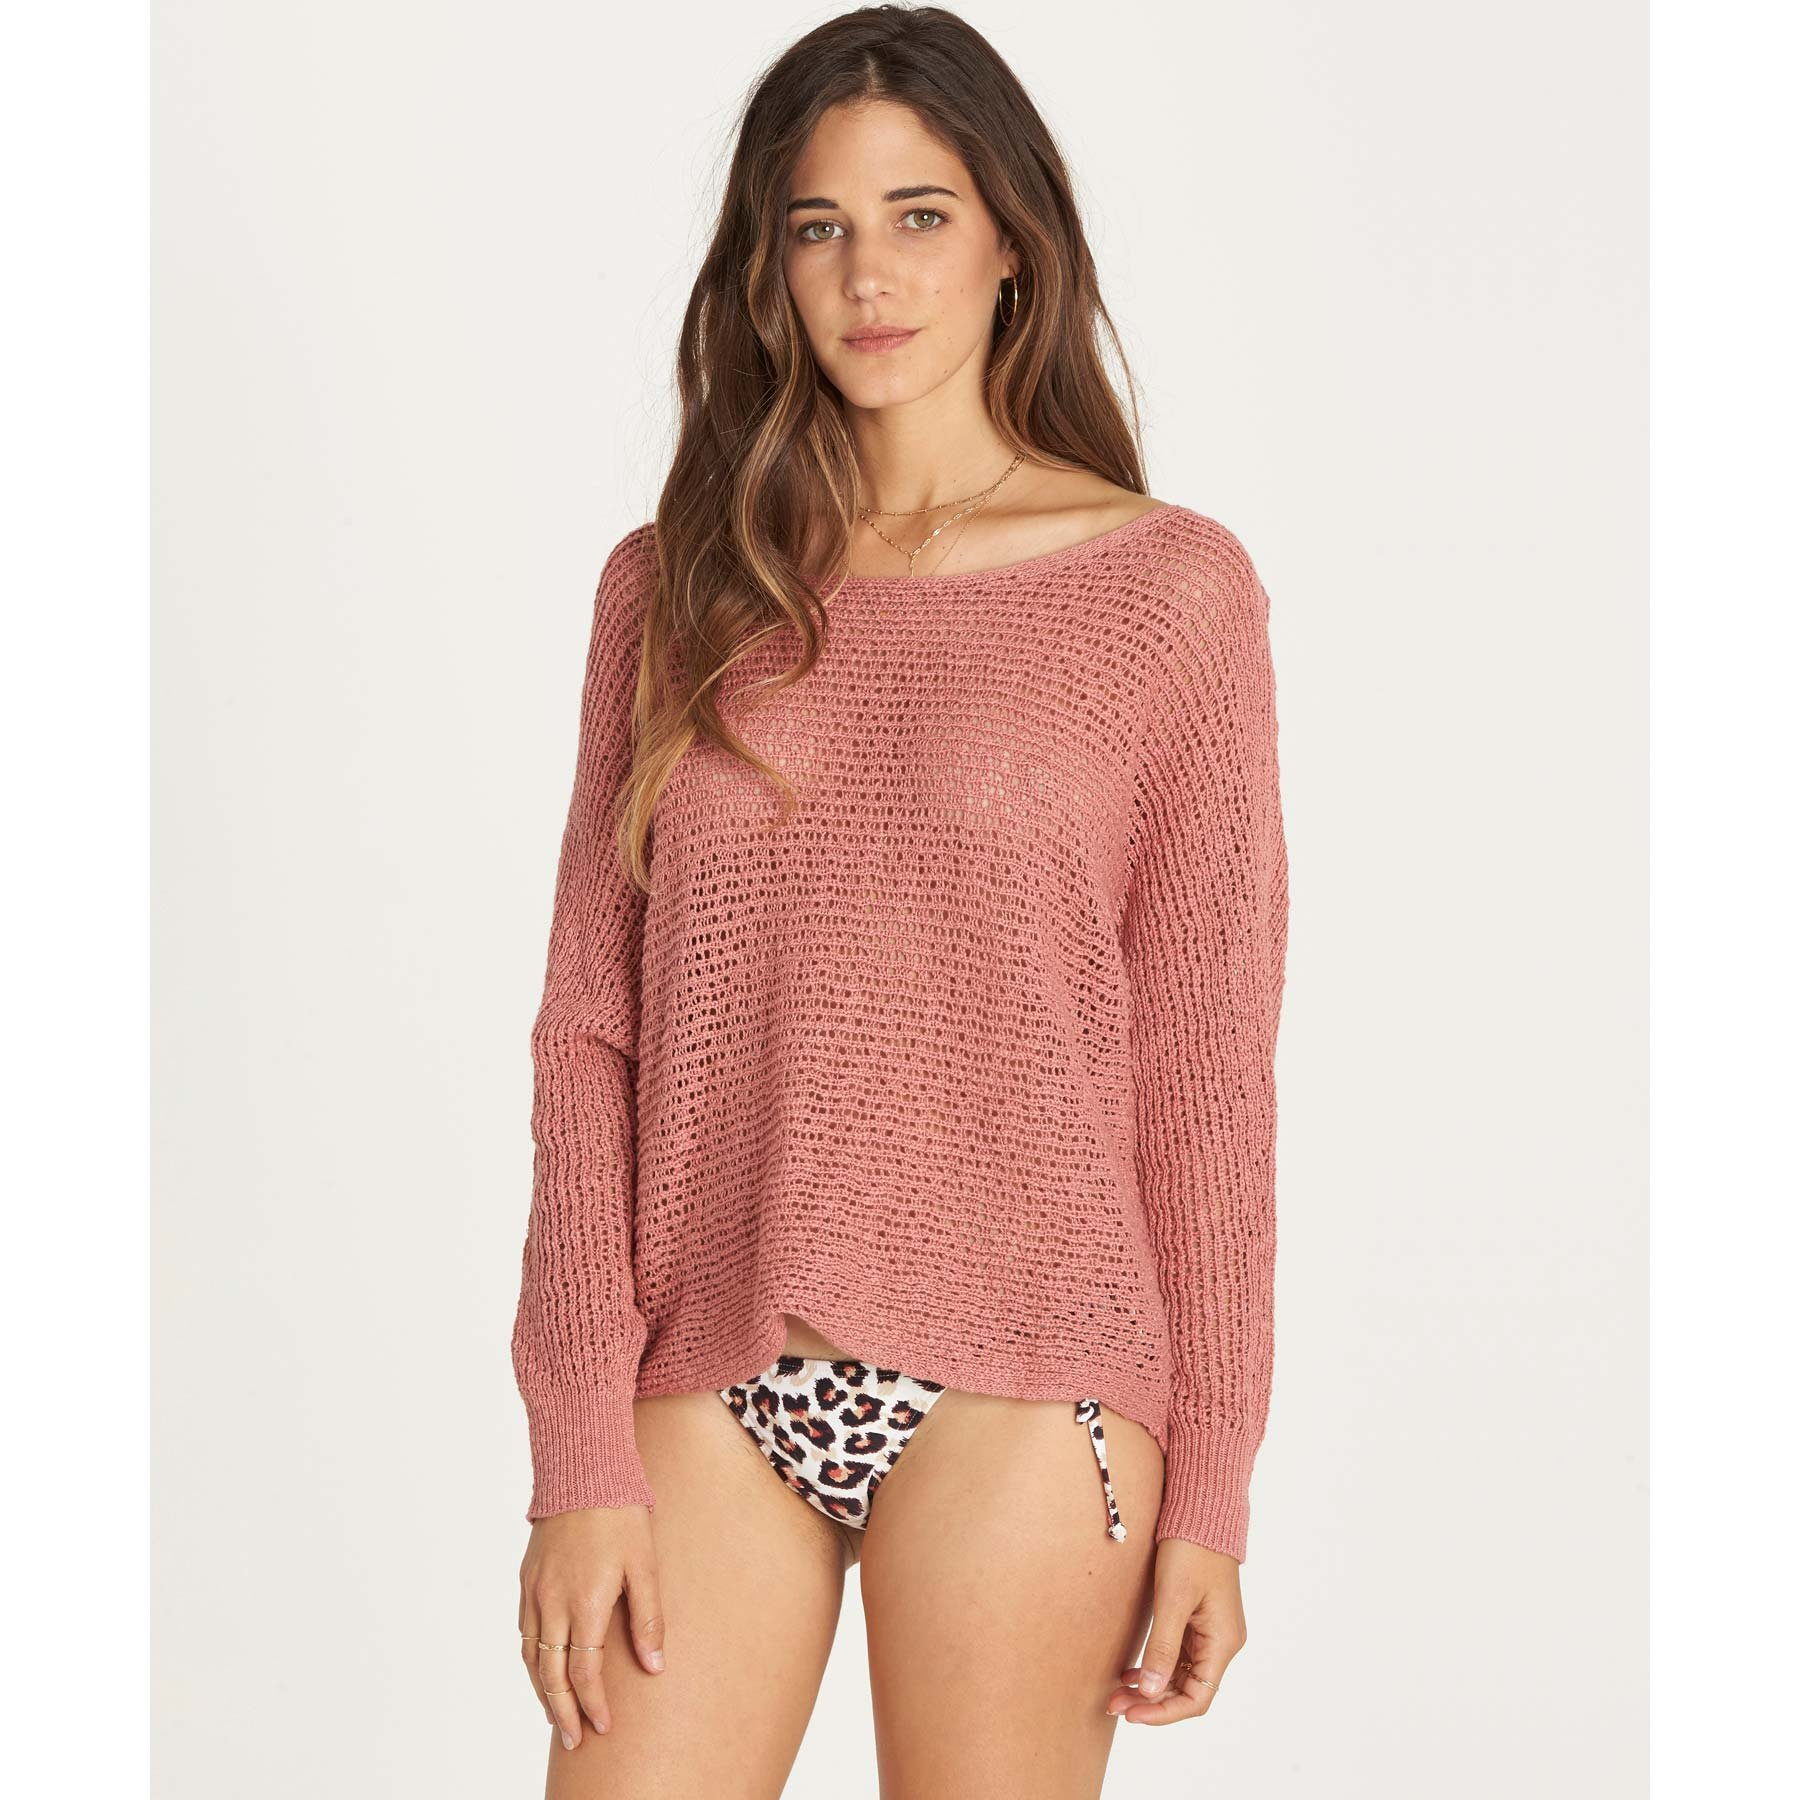 Billabong Women's Dance with Me Pull Over Sweater, Ash Rose, S